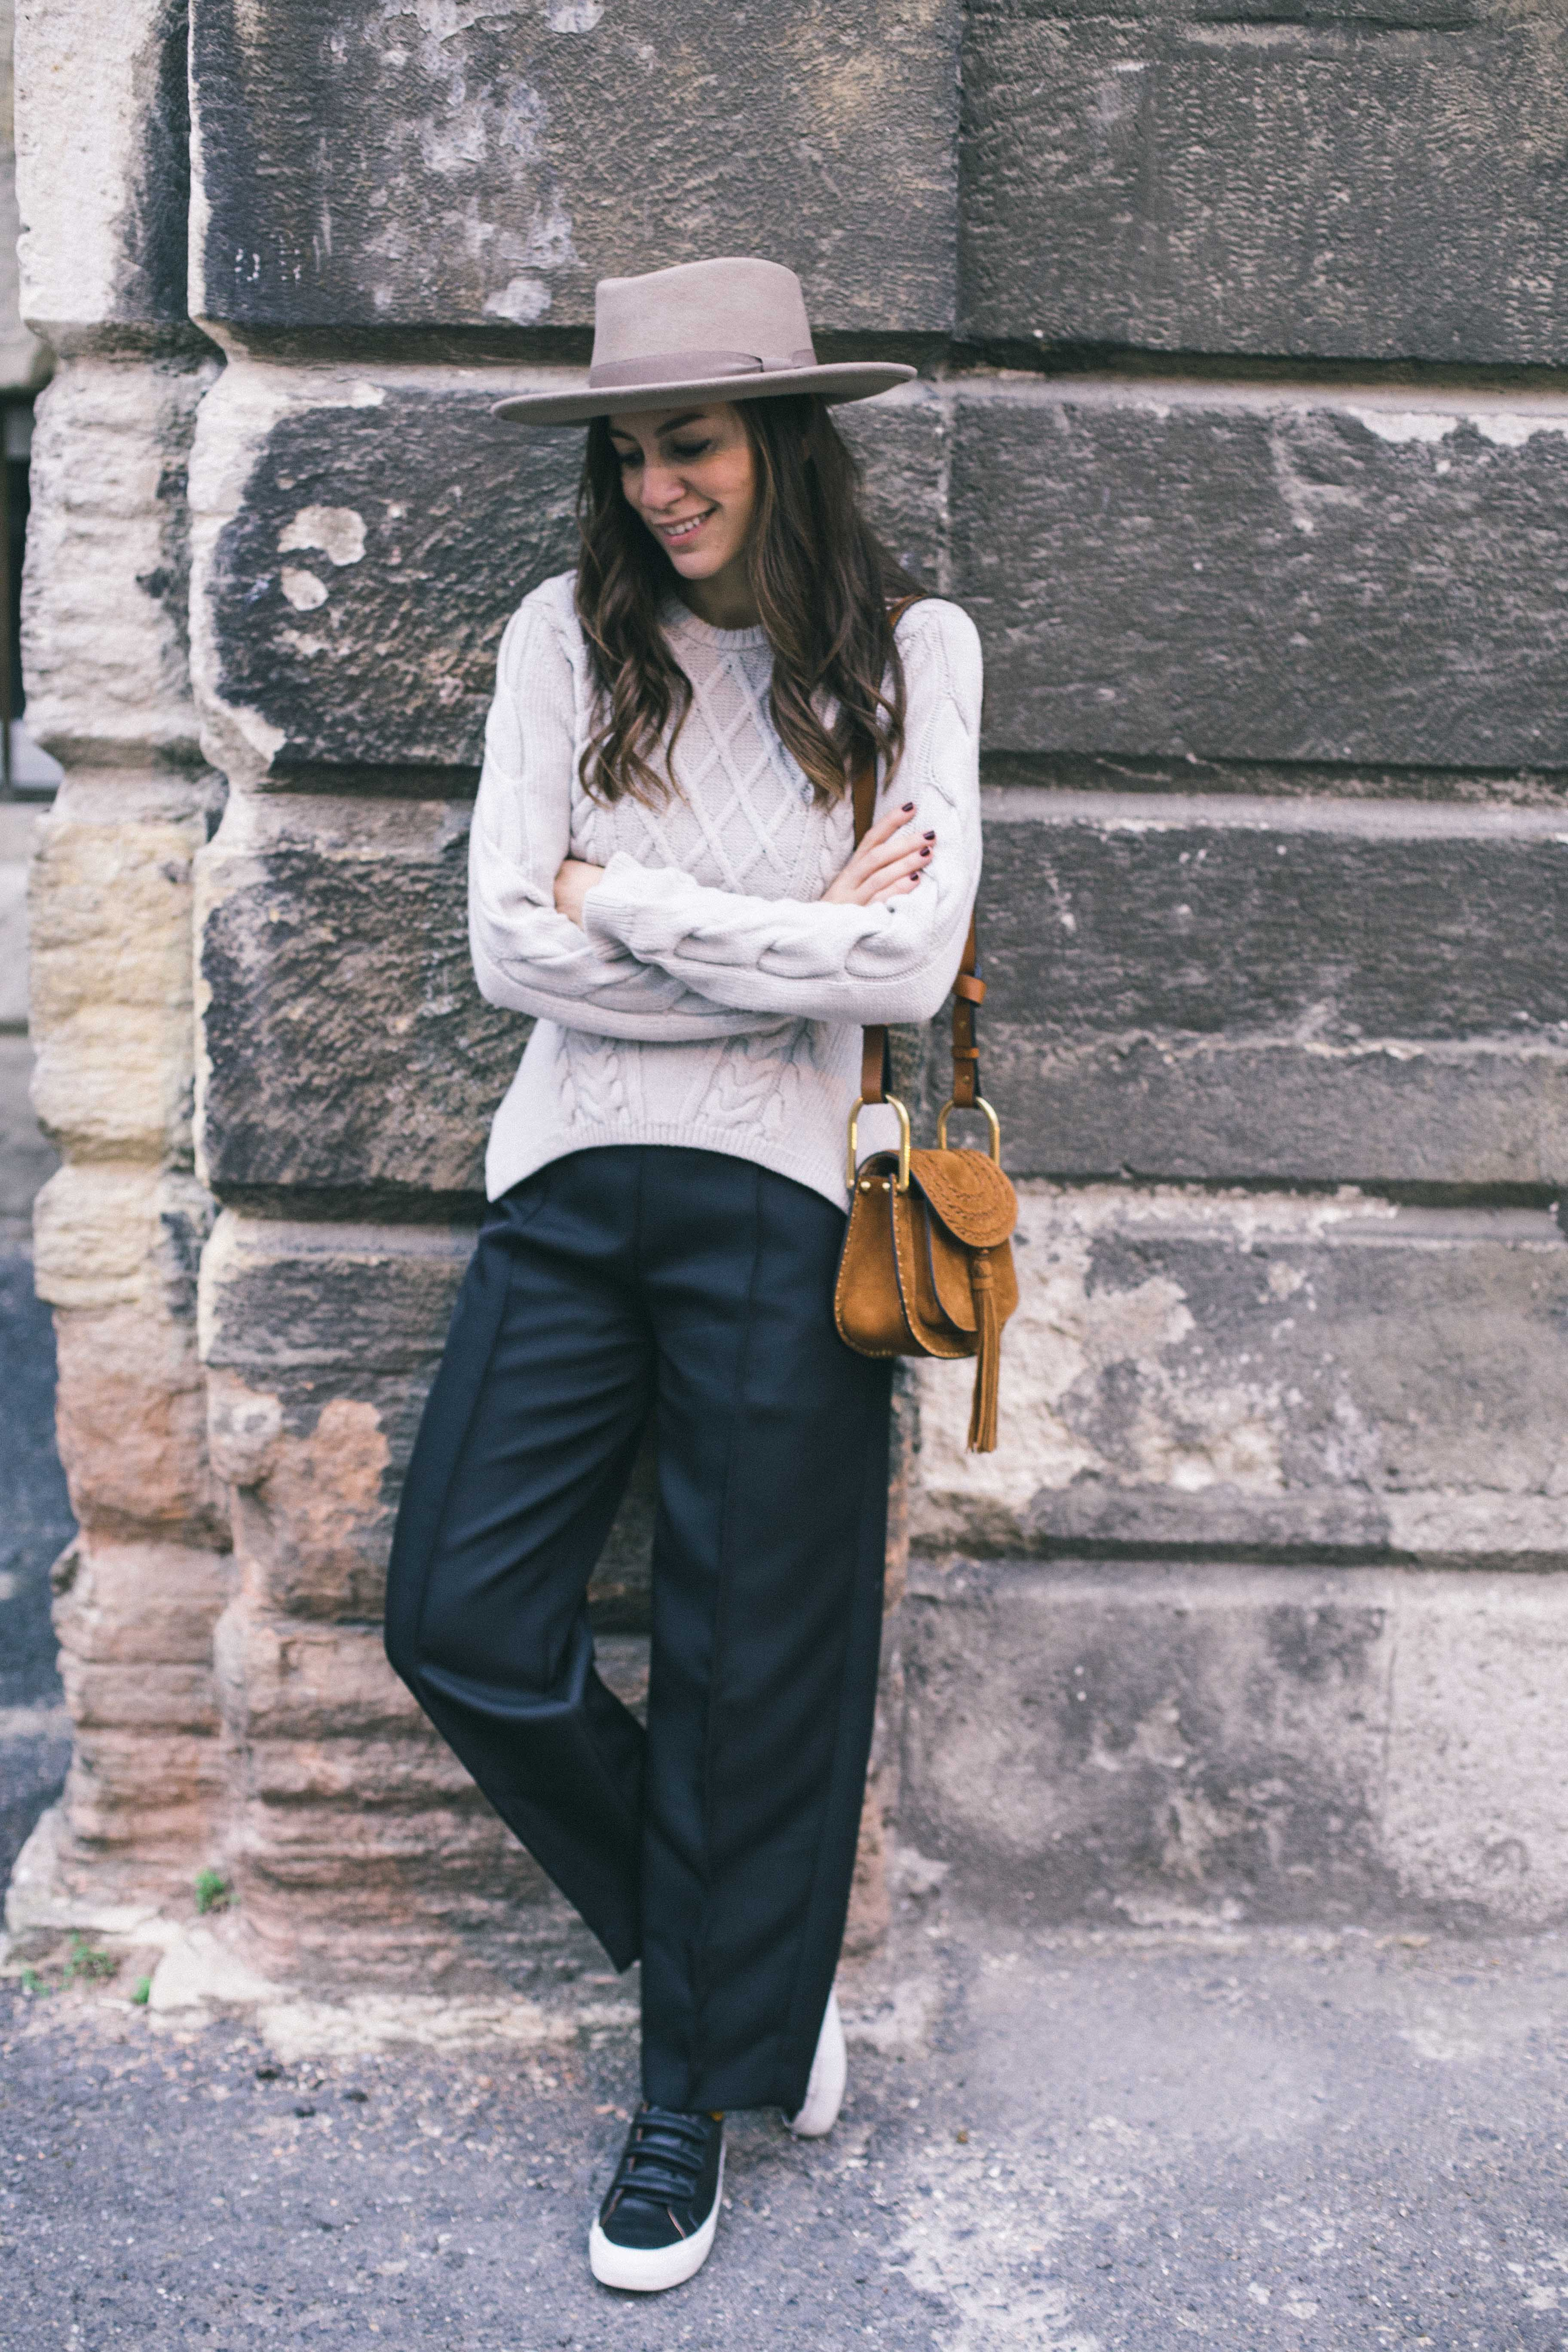 billur saatci, offnegiysem, turkish style blogger, street style, fashion, ootd, blogger, istanbul, carven, knitwear, vintage hat, kiliwatch, acne, no name shoes, chloe bag, hudson bag,